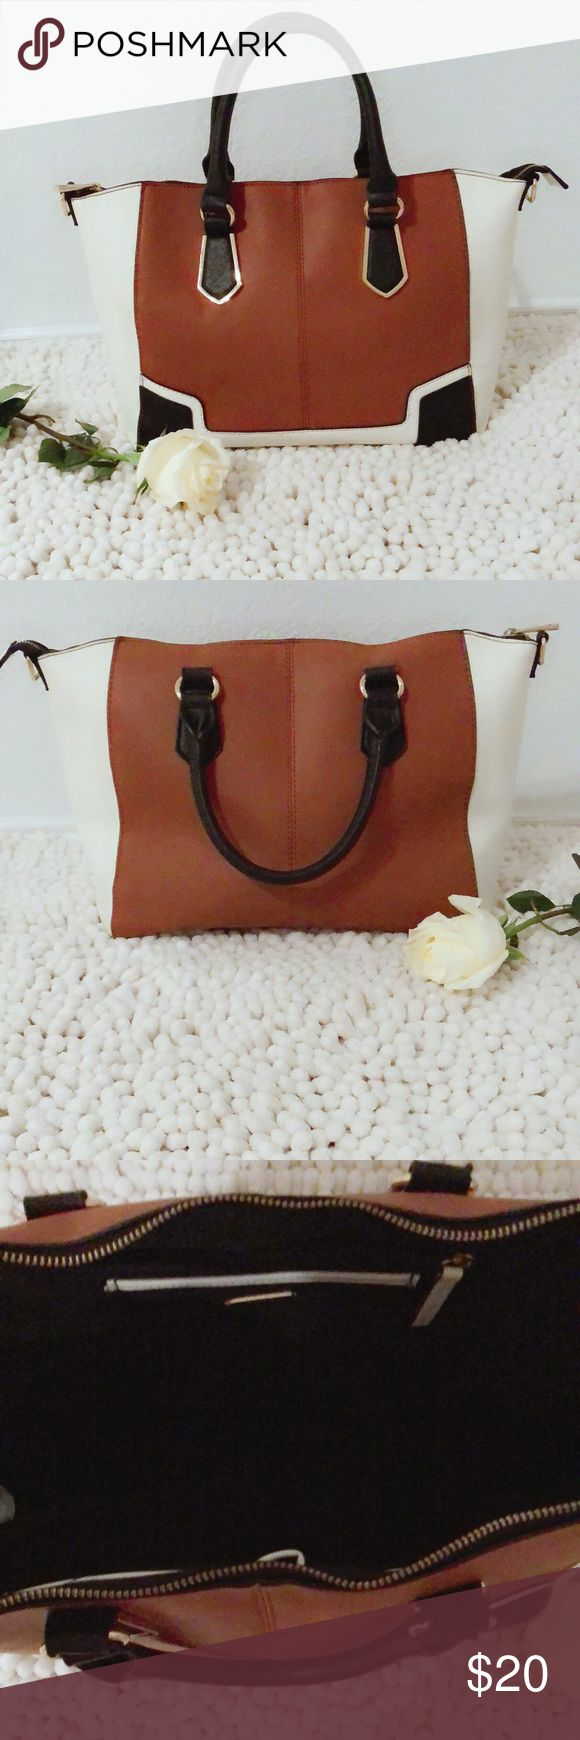 Women's Aldo Tote bag The 'Bremmer' is a satchel by ALDO and it's in the color: white/brown/black preowned- in very good condition Hight length- 10 inches, width 16 inches Free pair of blue earrings with purchase Aldo Bags Totes